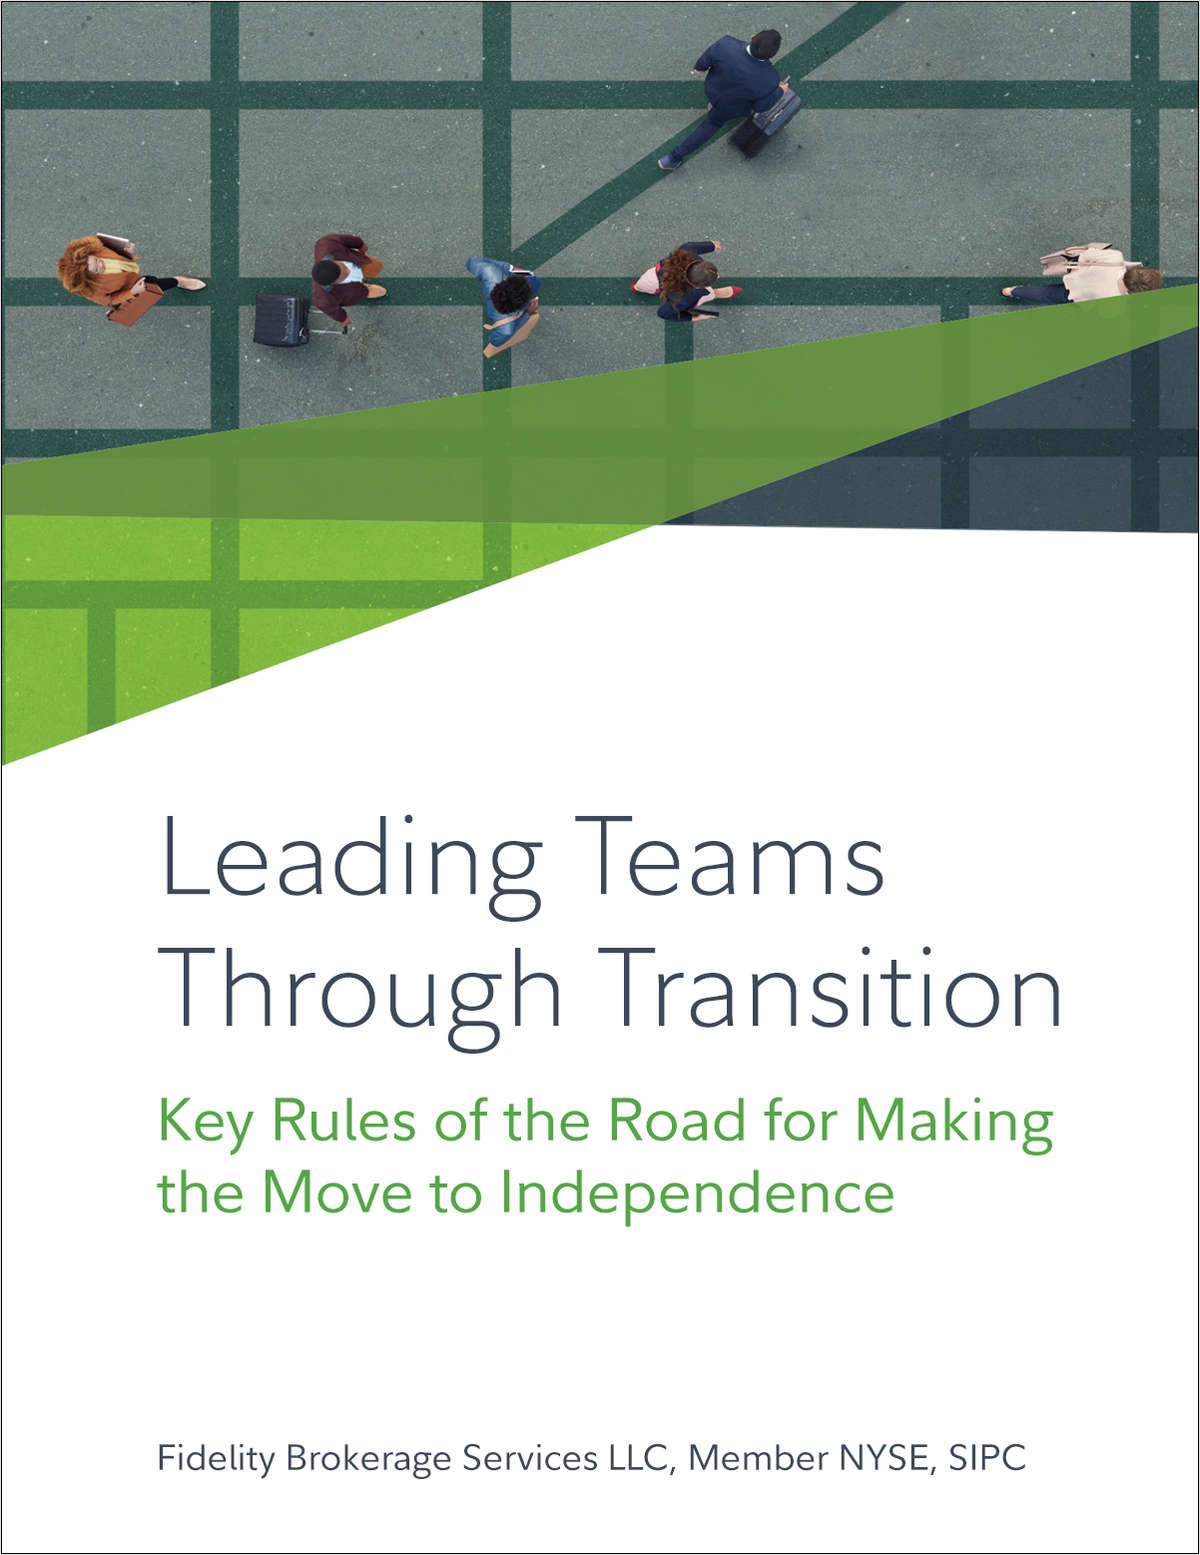 Leading Teams Through Transition: Key Rules of the Road for Making the Move to Independence